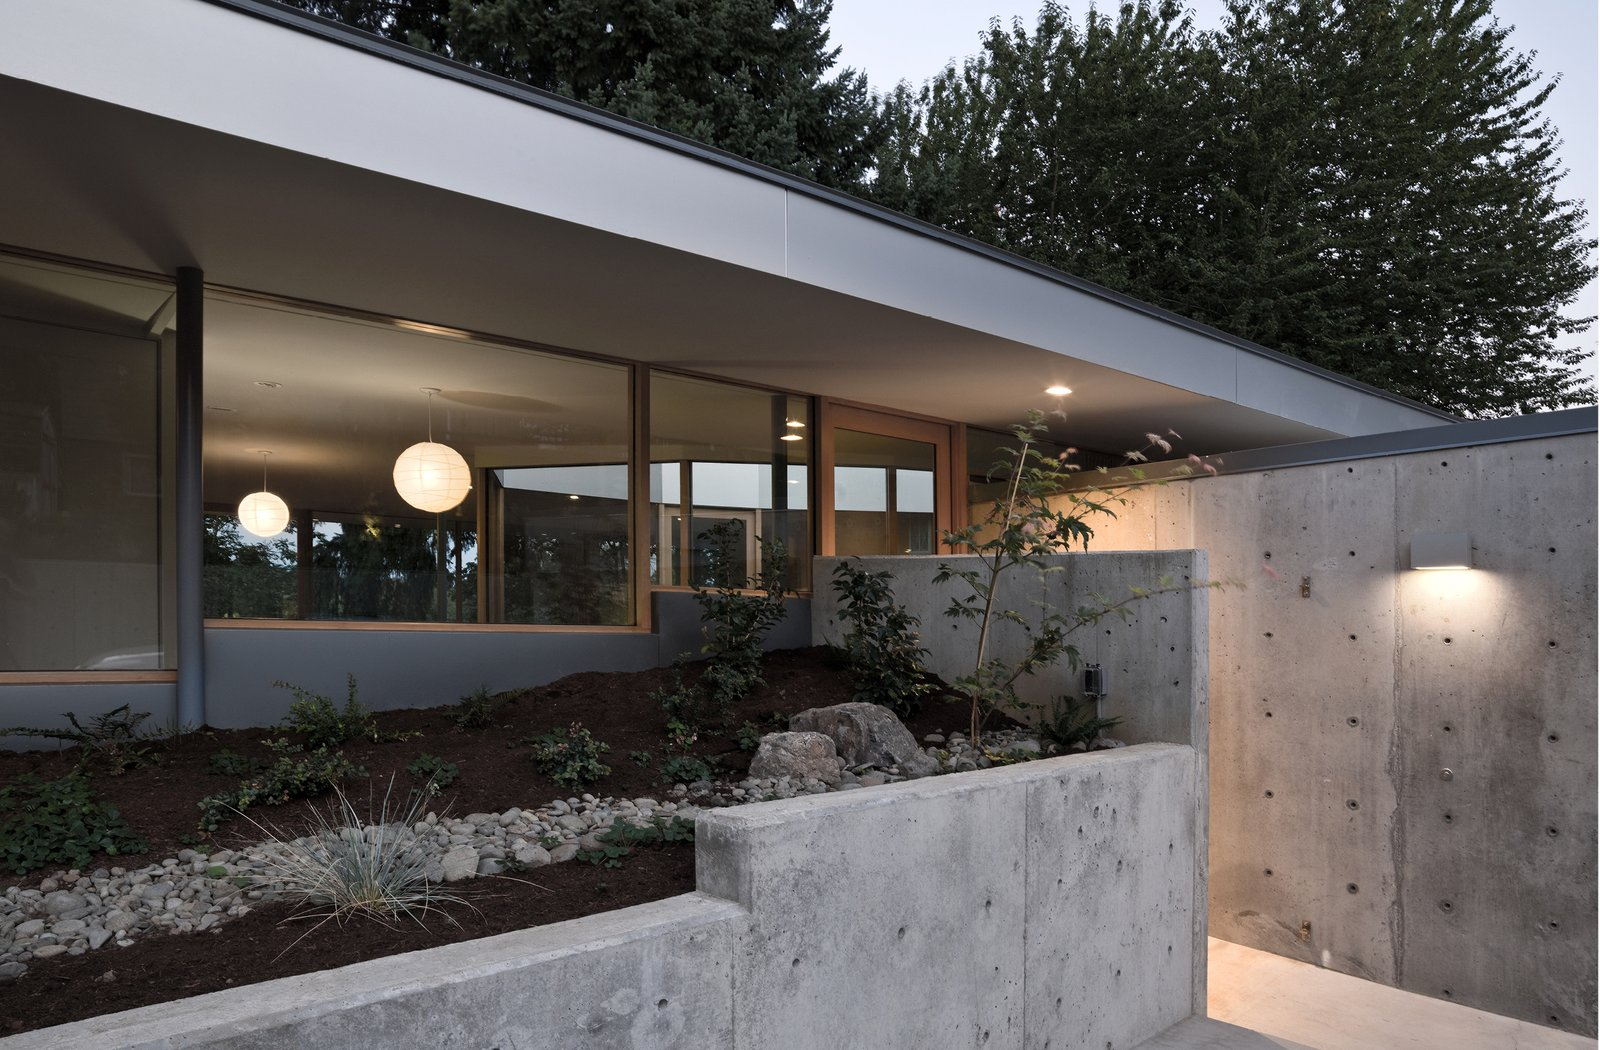 Entered through a sunken patio, the house flows in a continuous loop around two L-shaped storage cores.  The Courtyard House